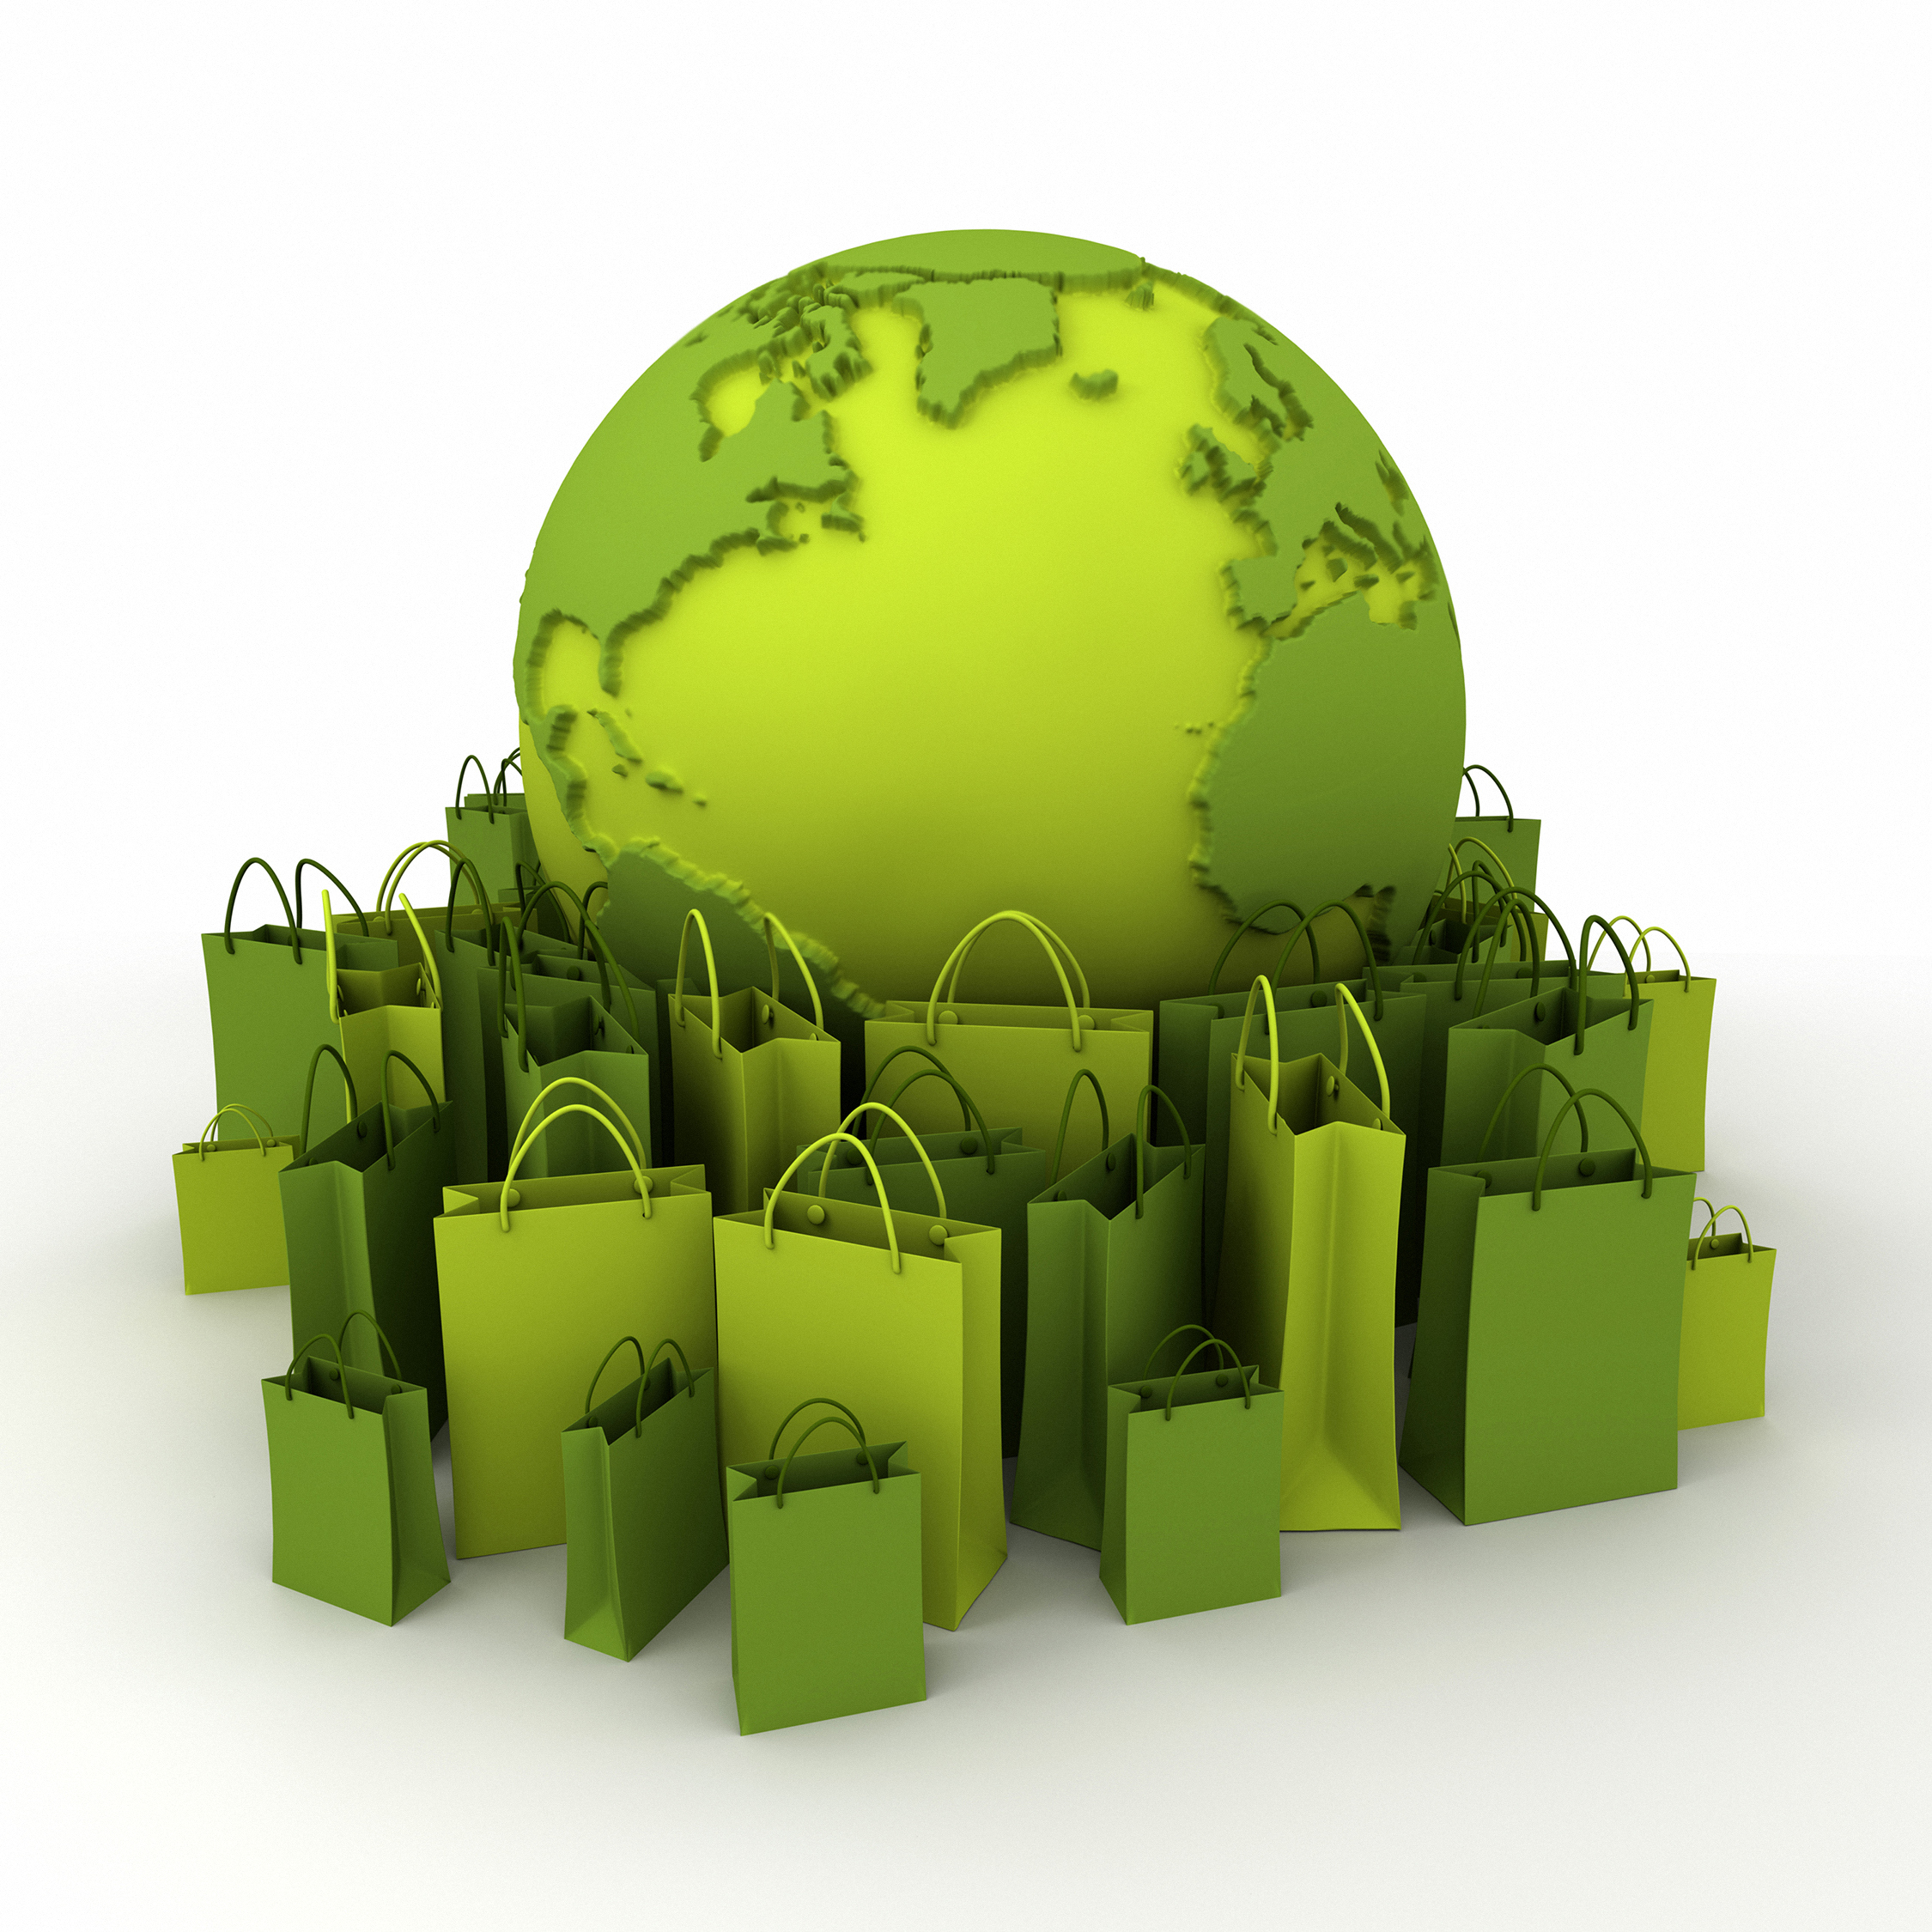 World globe surrounded by shopping bags in green shades.